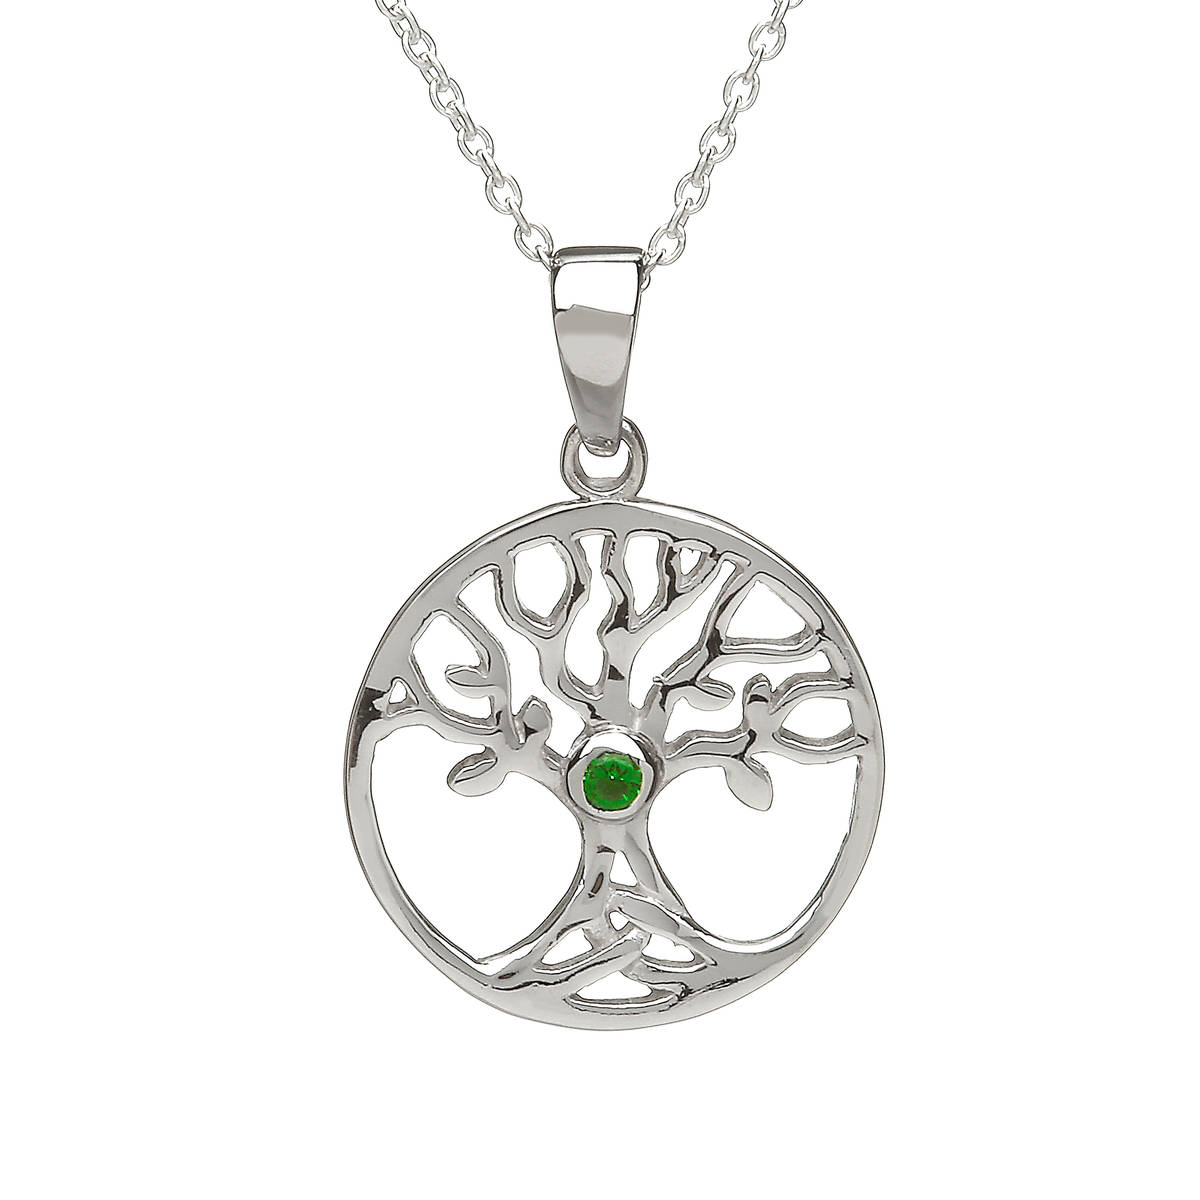 Silver Open Tree Of Life Pendant With Green Cz Centre